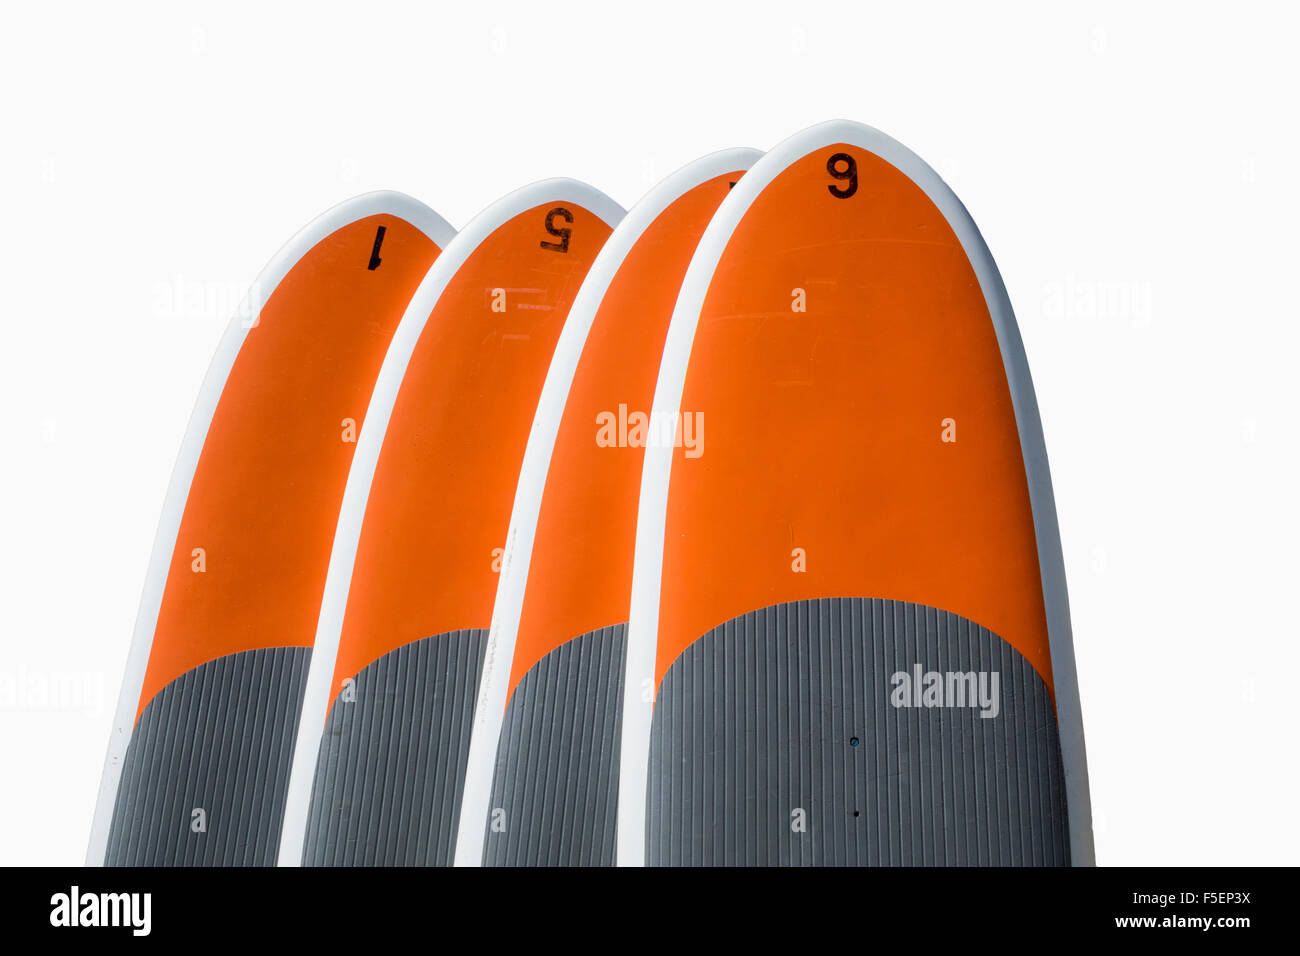 Row of four paddle boards or body or surf boards on white background - Stock Image